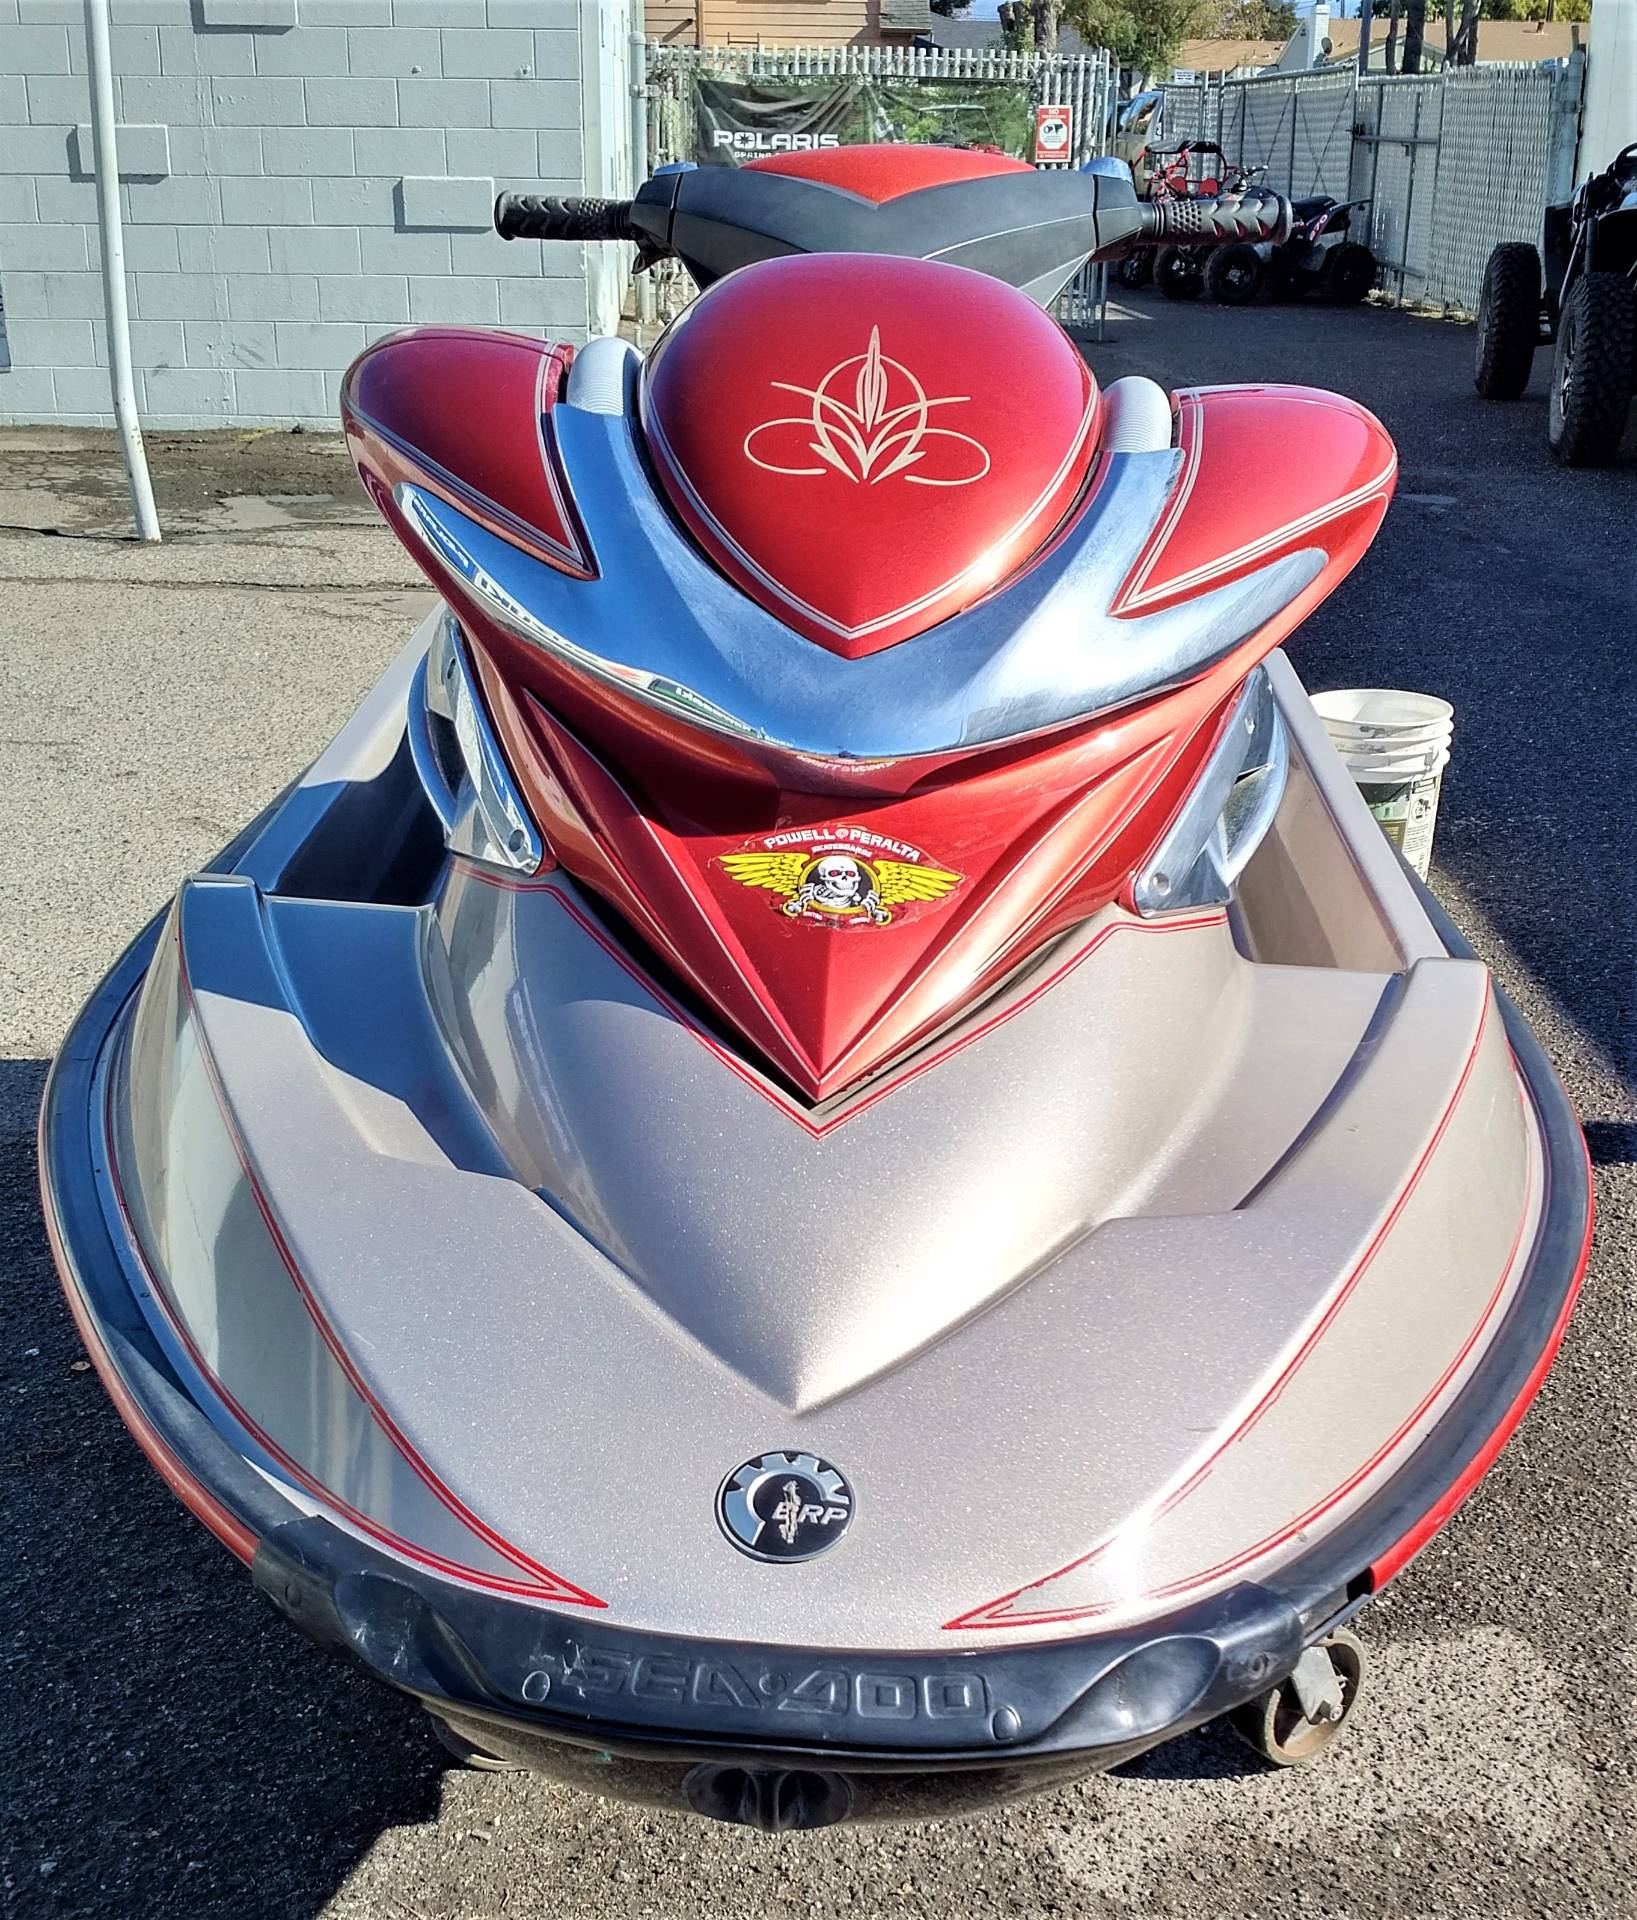 2005 Sea-Doo RXP in Salinas, California - Photo 5